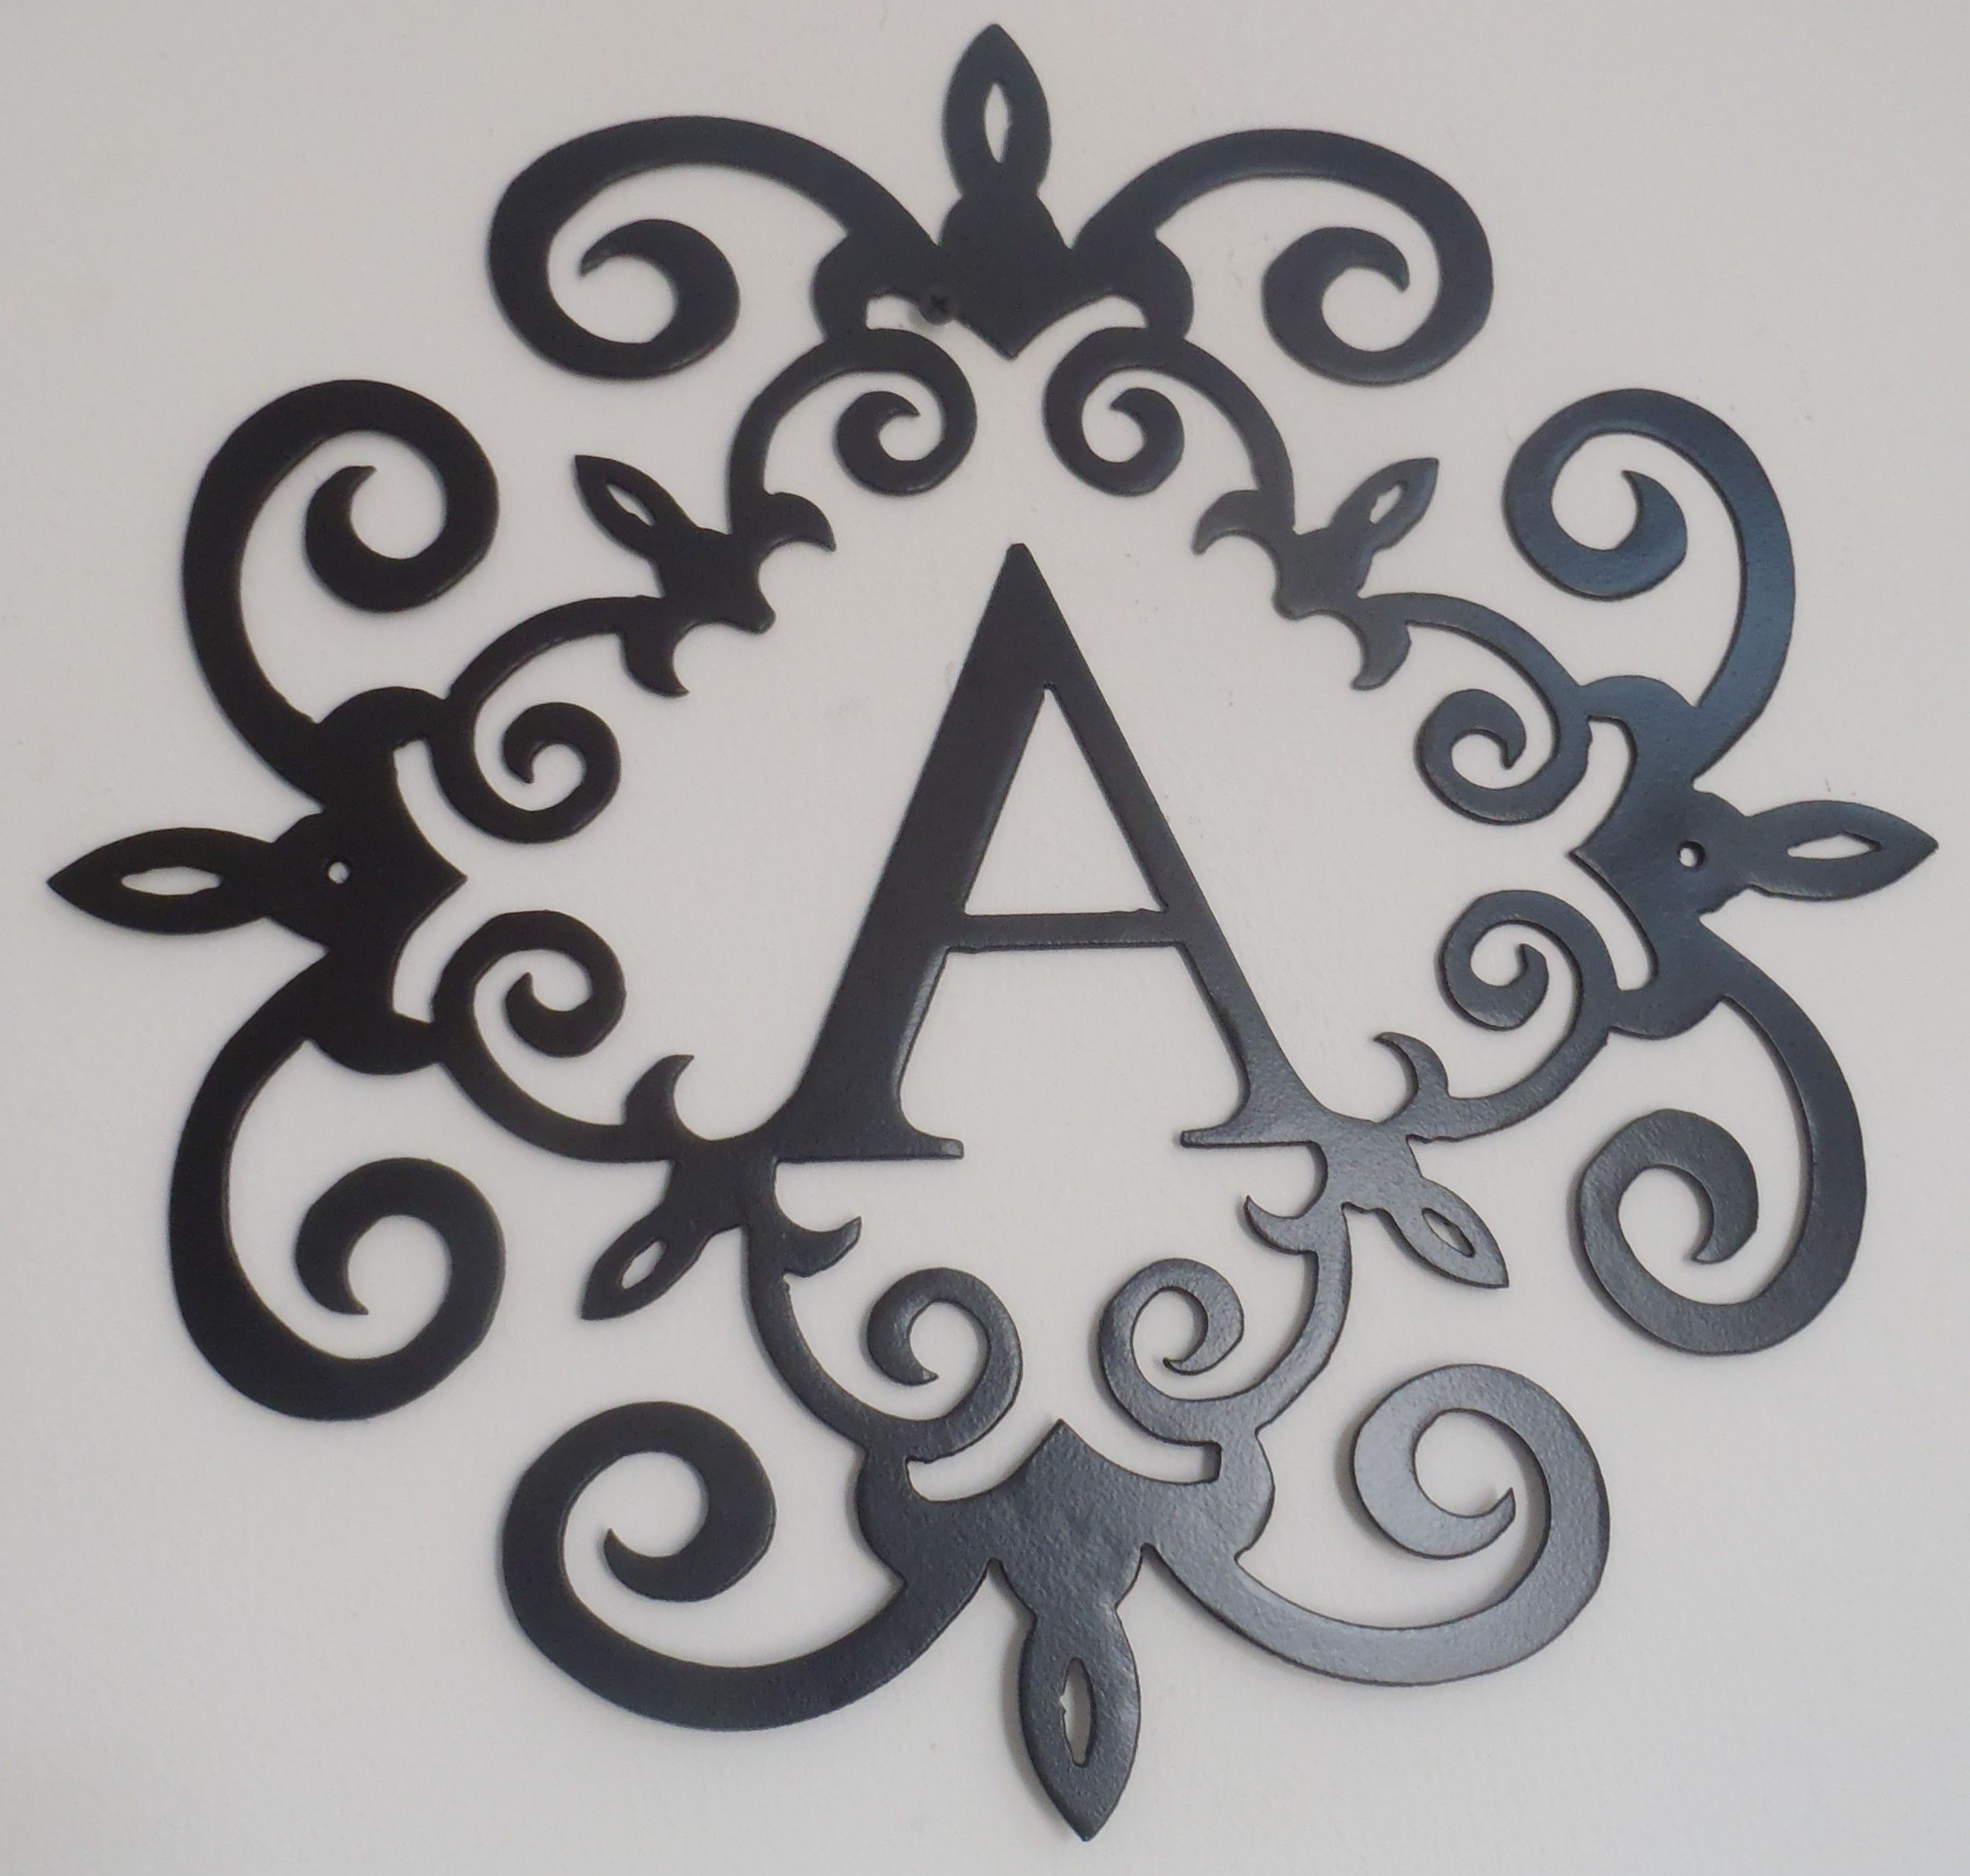 Well Known Family Initial, Monogram Inside A Metal Scroll With A Letter, Wall Inside Metal Scroll Wall Art (Gallery 18 of 20)